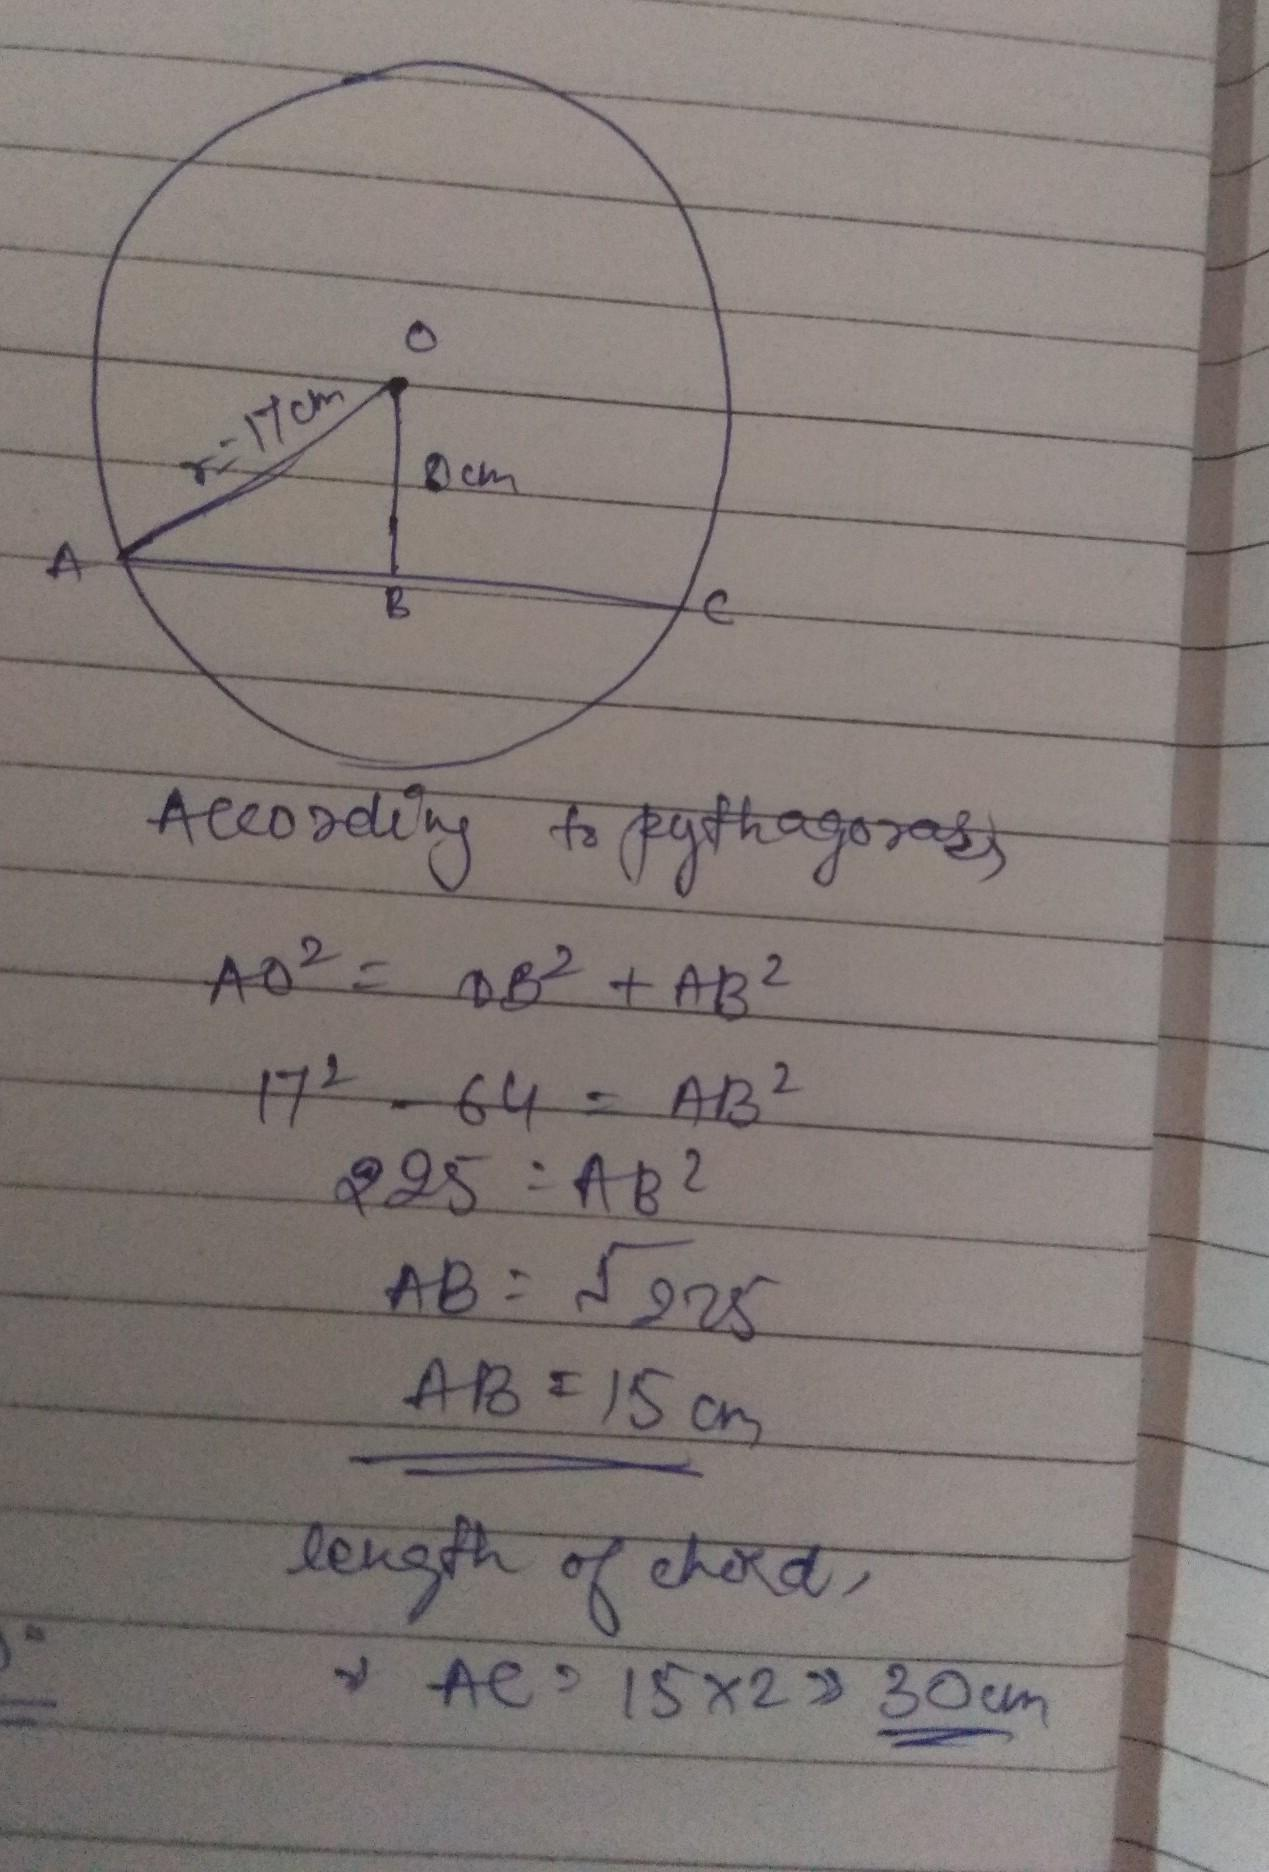 A chord is at a distance of 15cm from the centre of a circle of ...